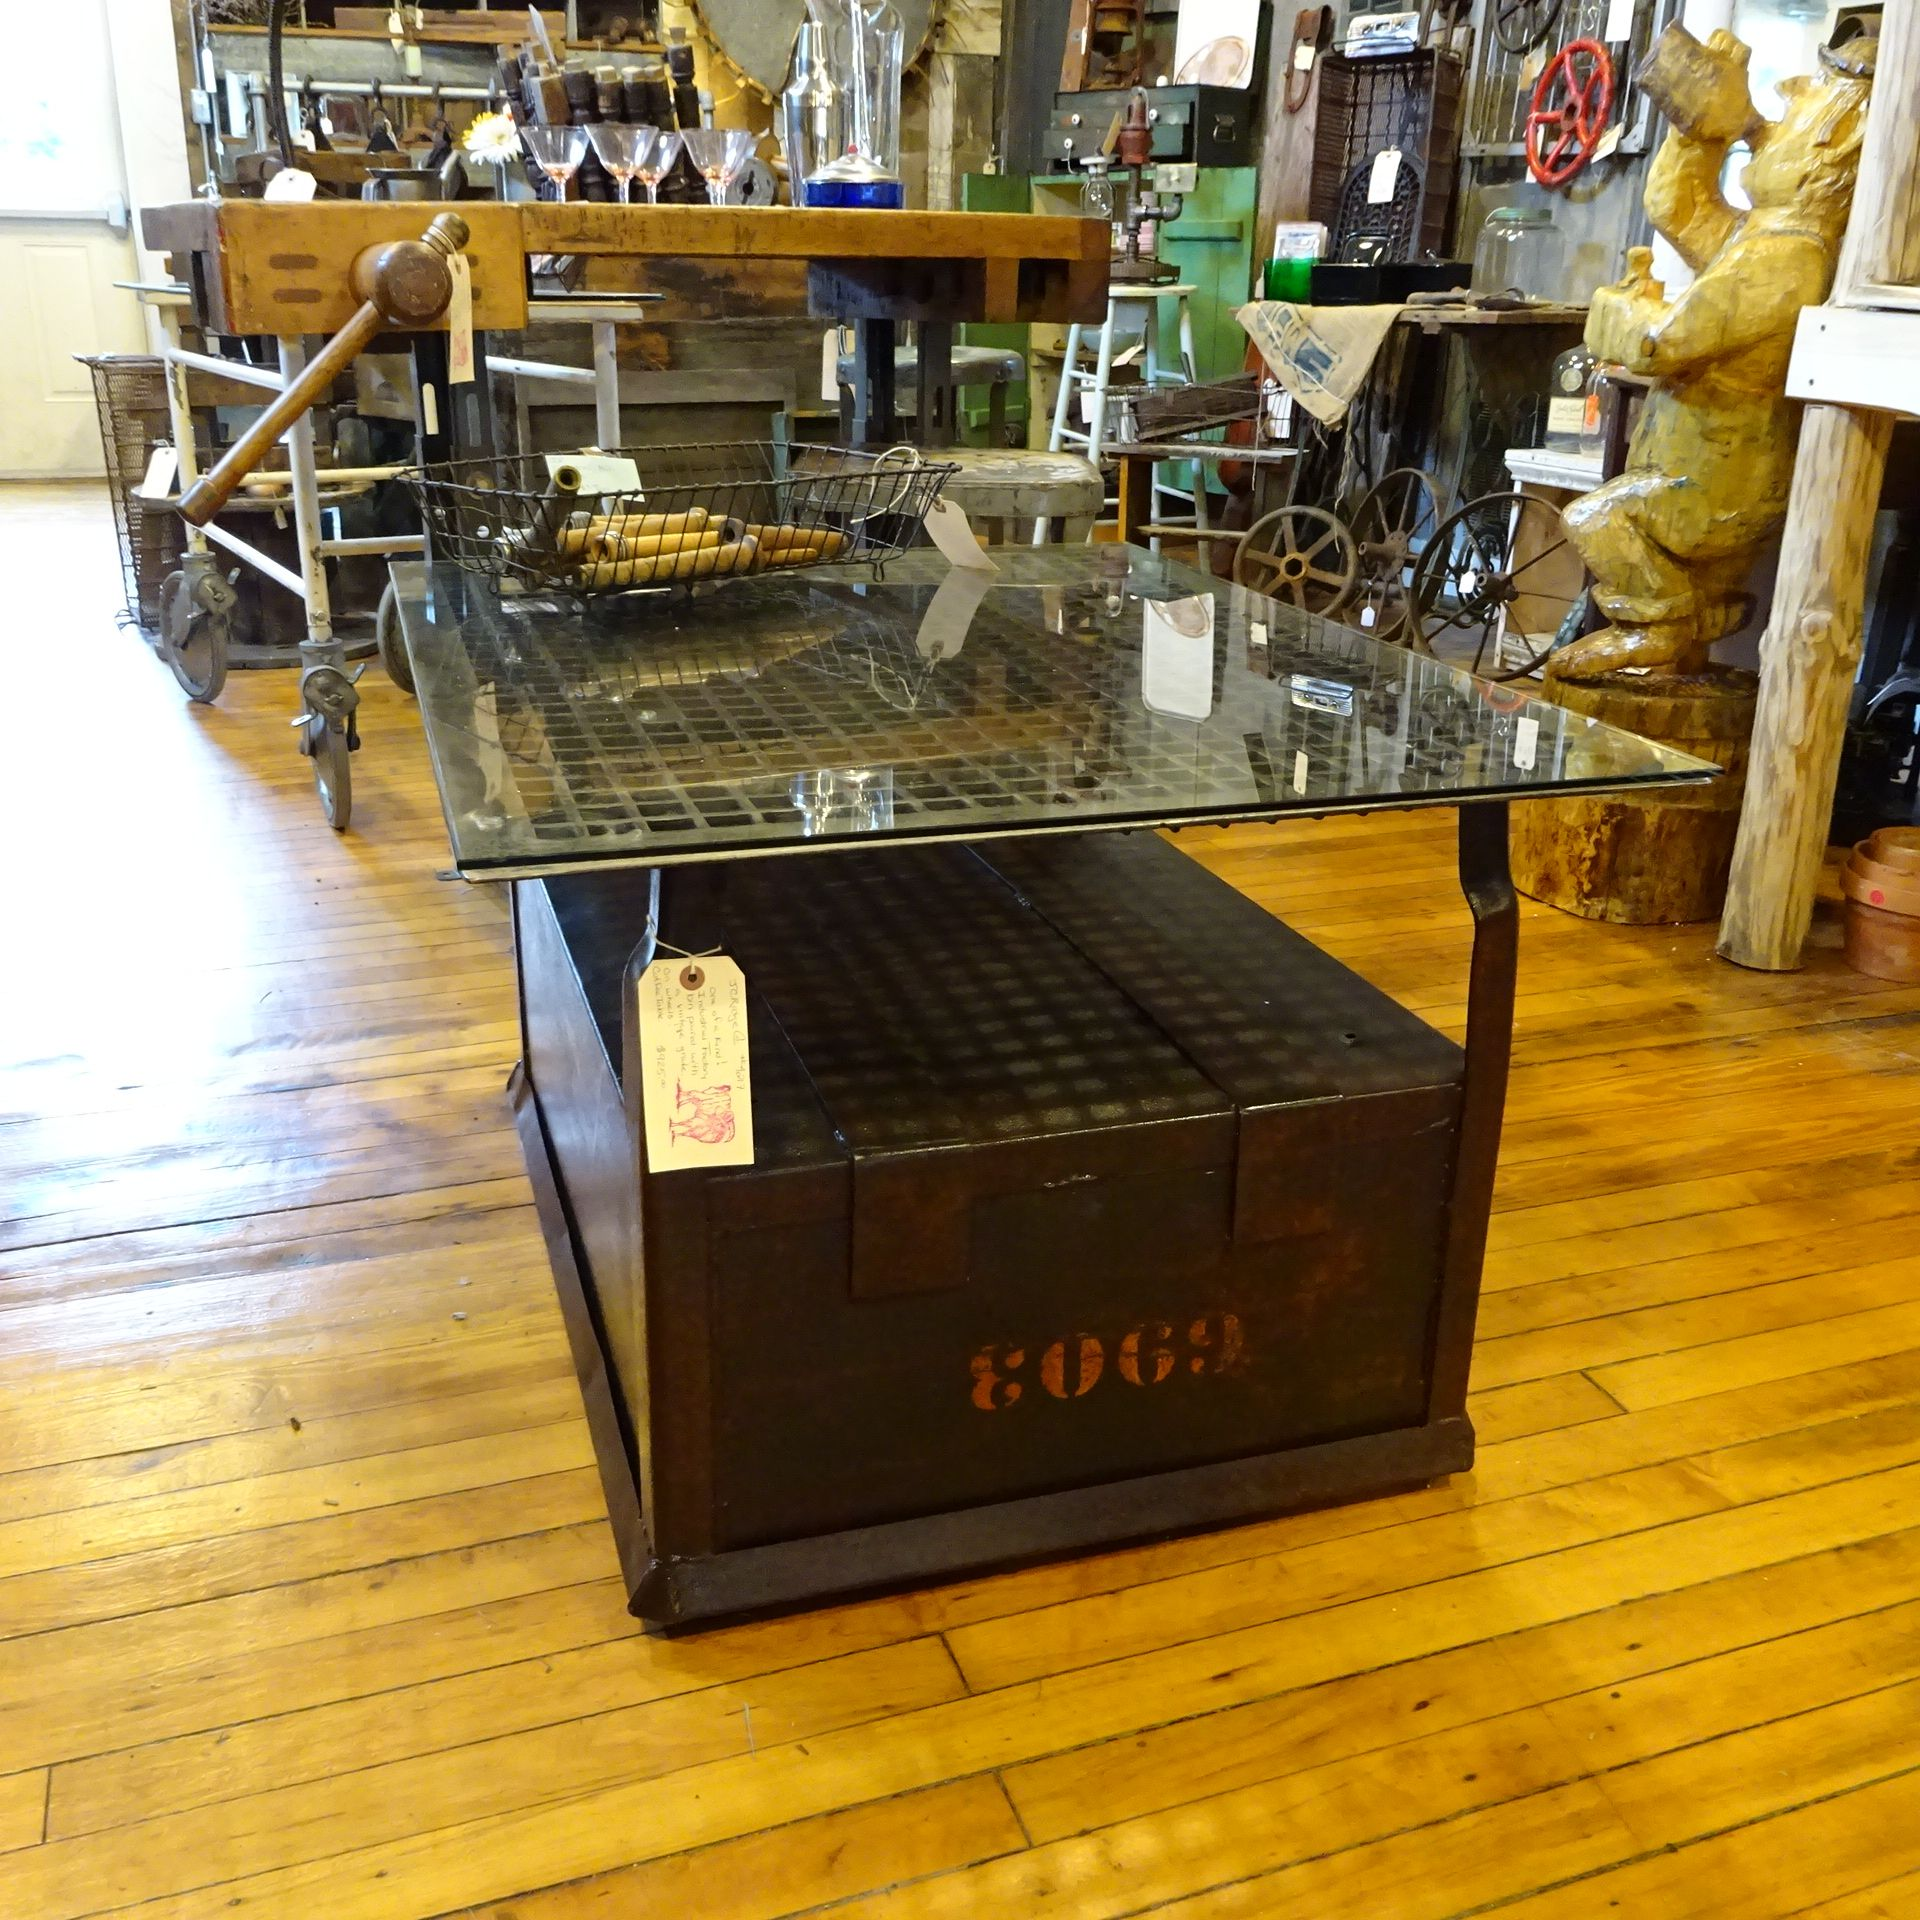 Factory industrial cart on wheels, top is a large grate with glass. One of a kind created by Shethar57